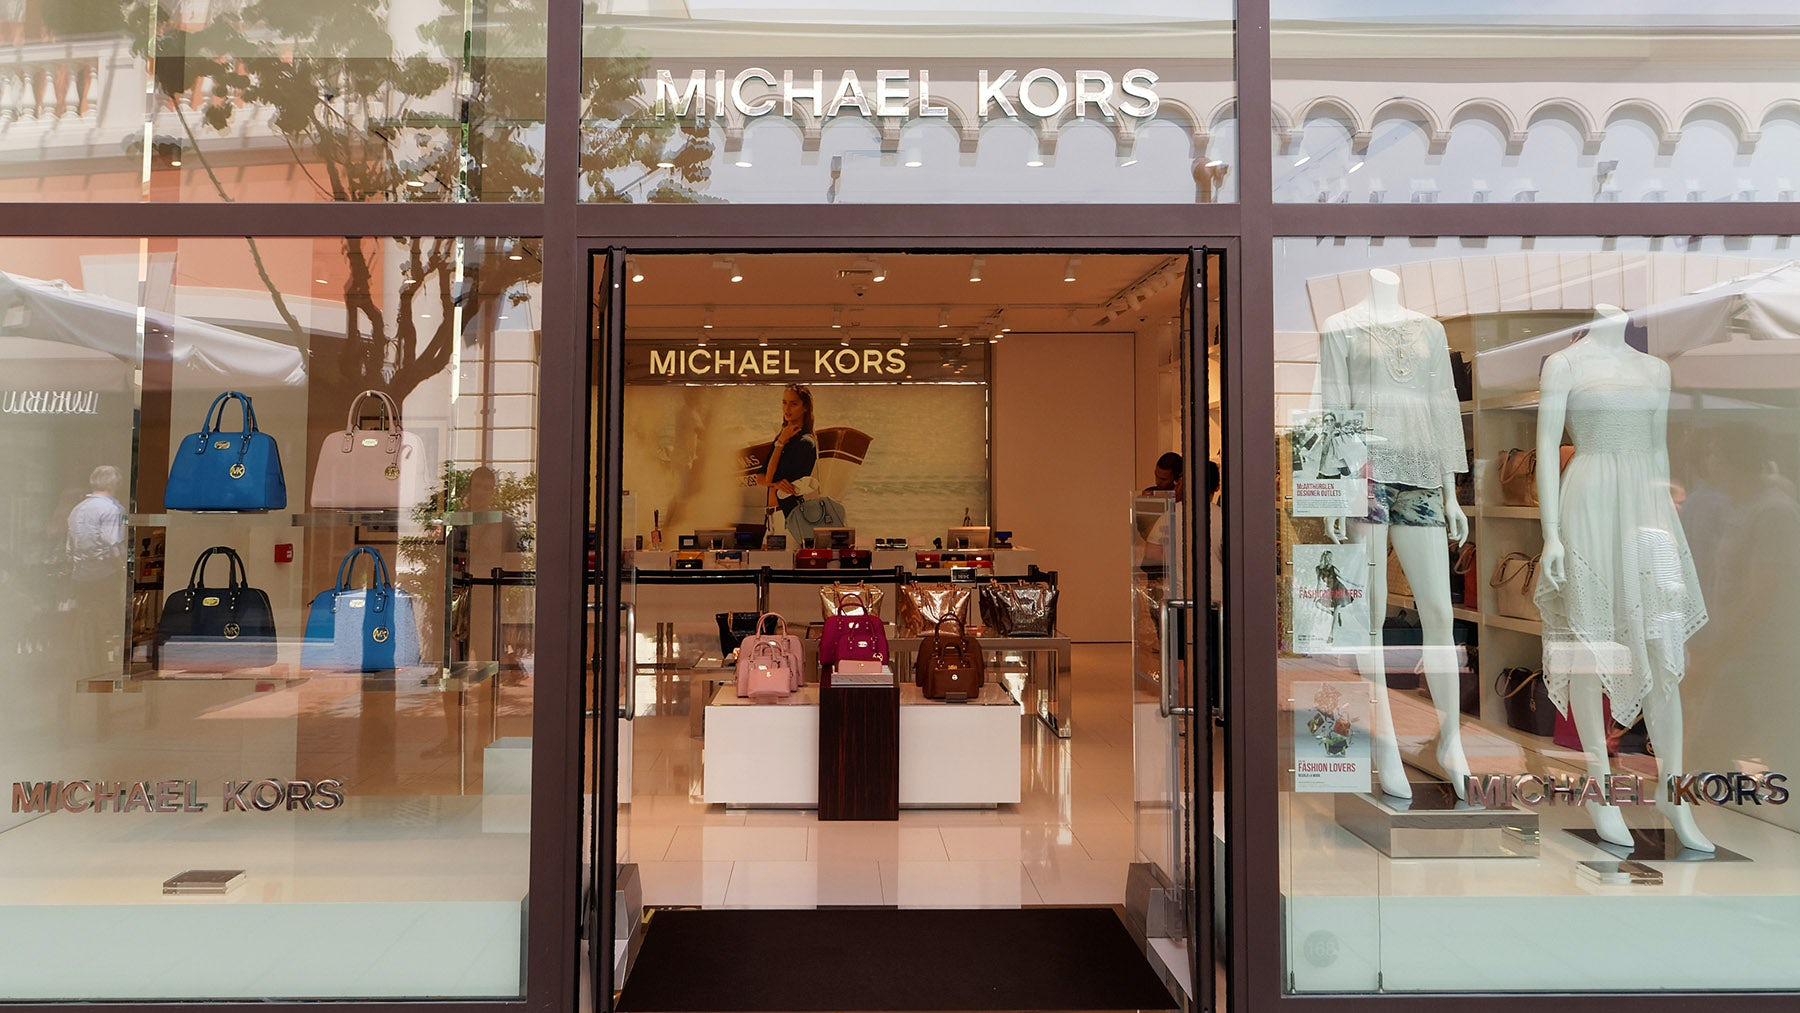 Michael Kors store | Source: Shutterstock